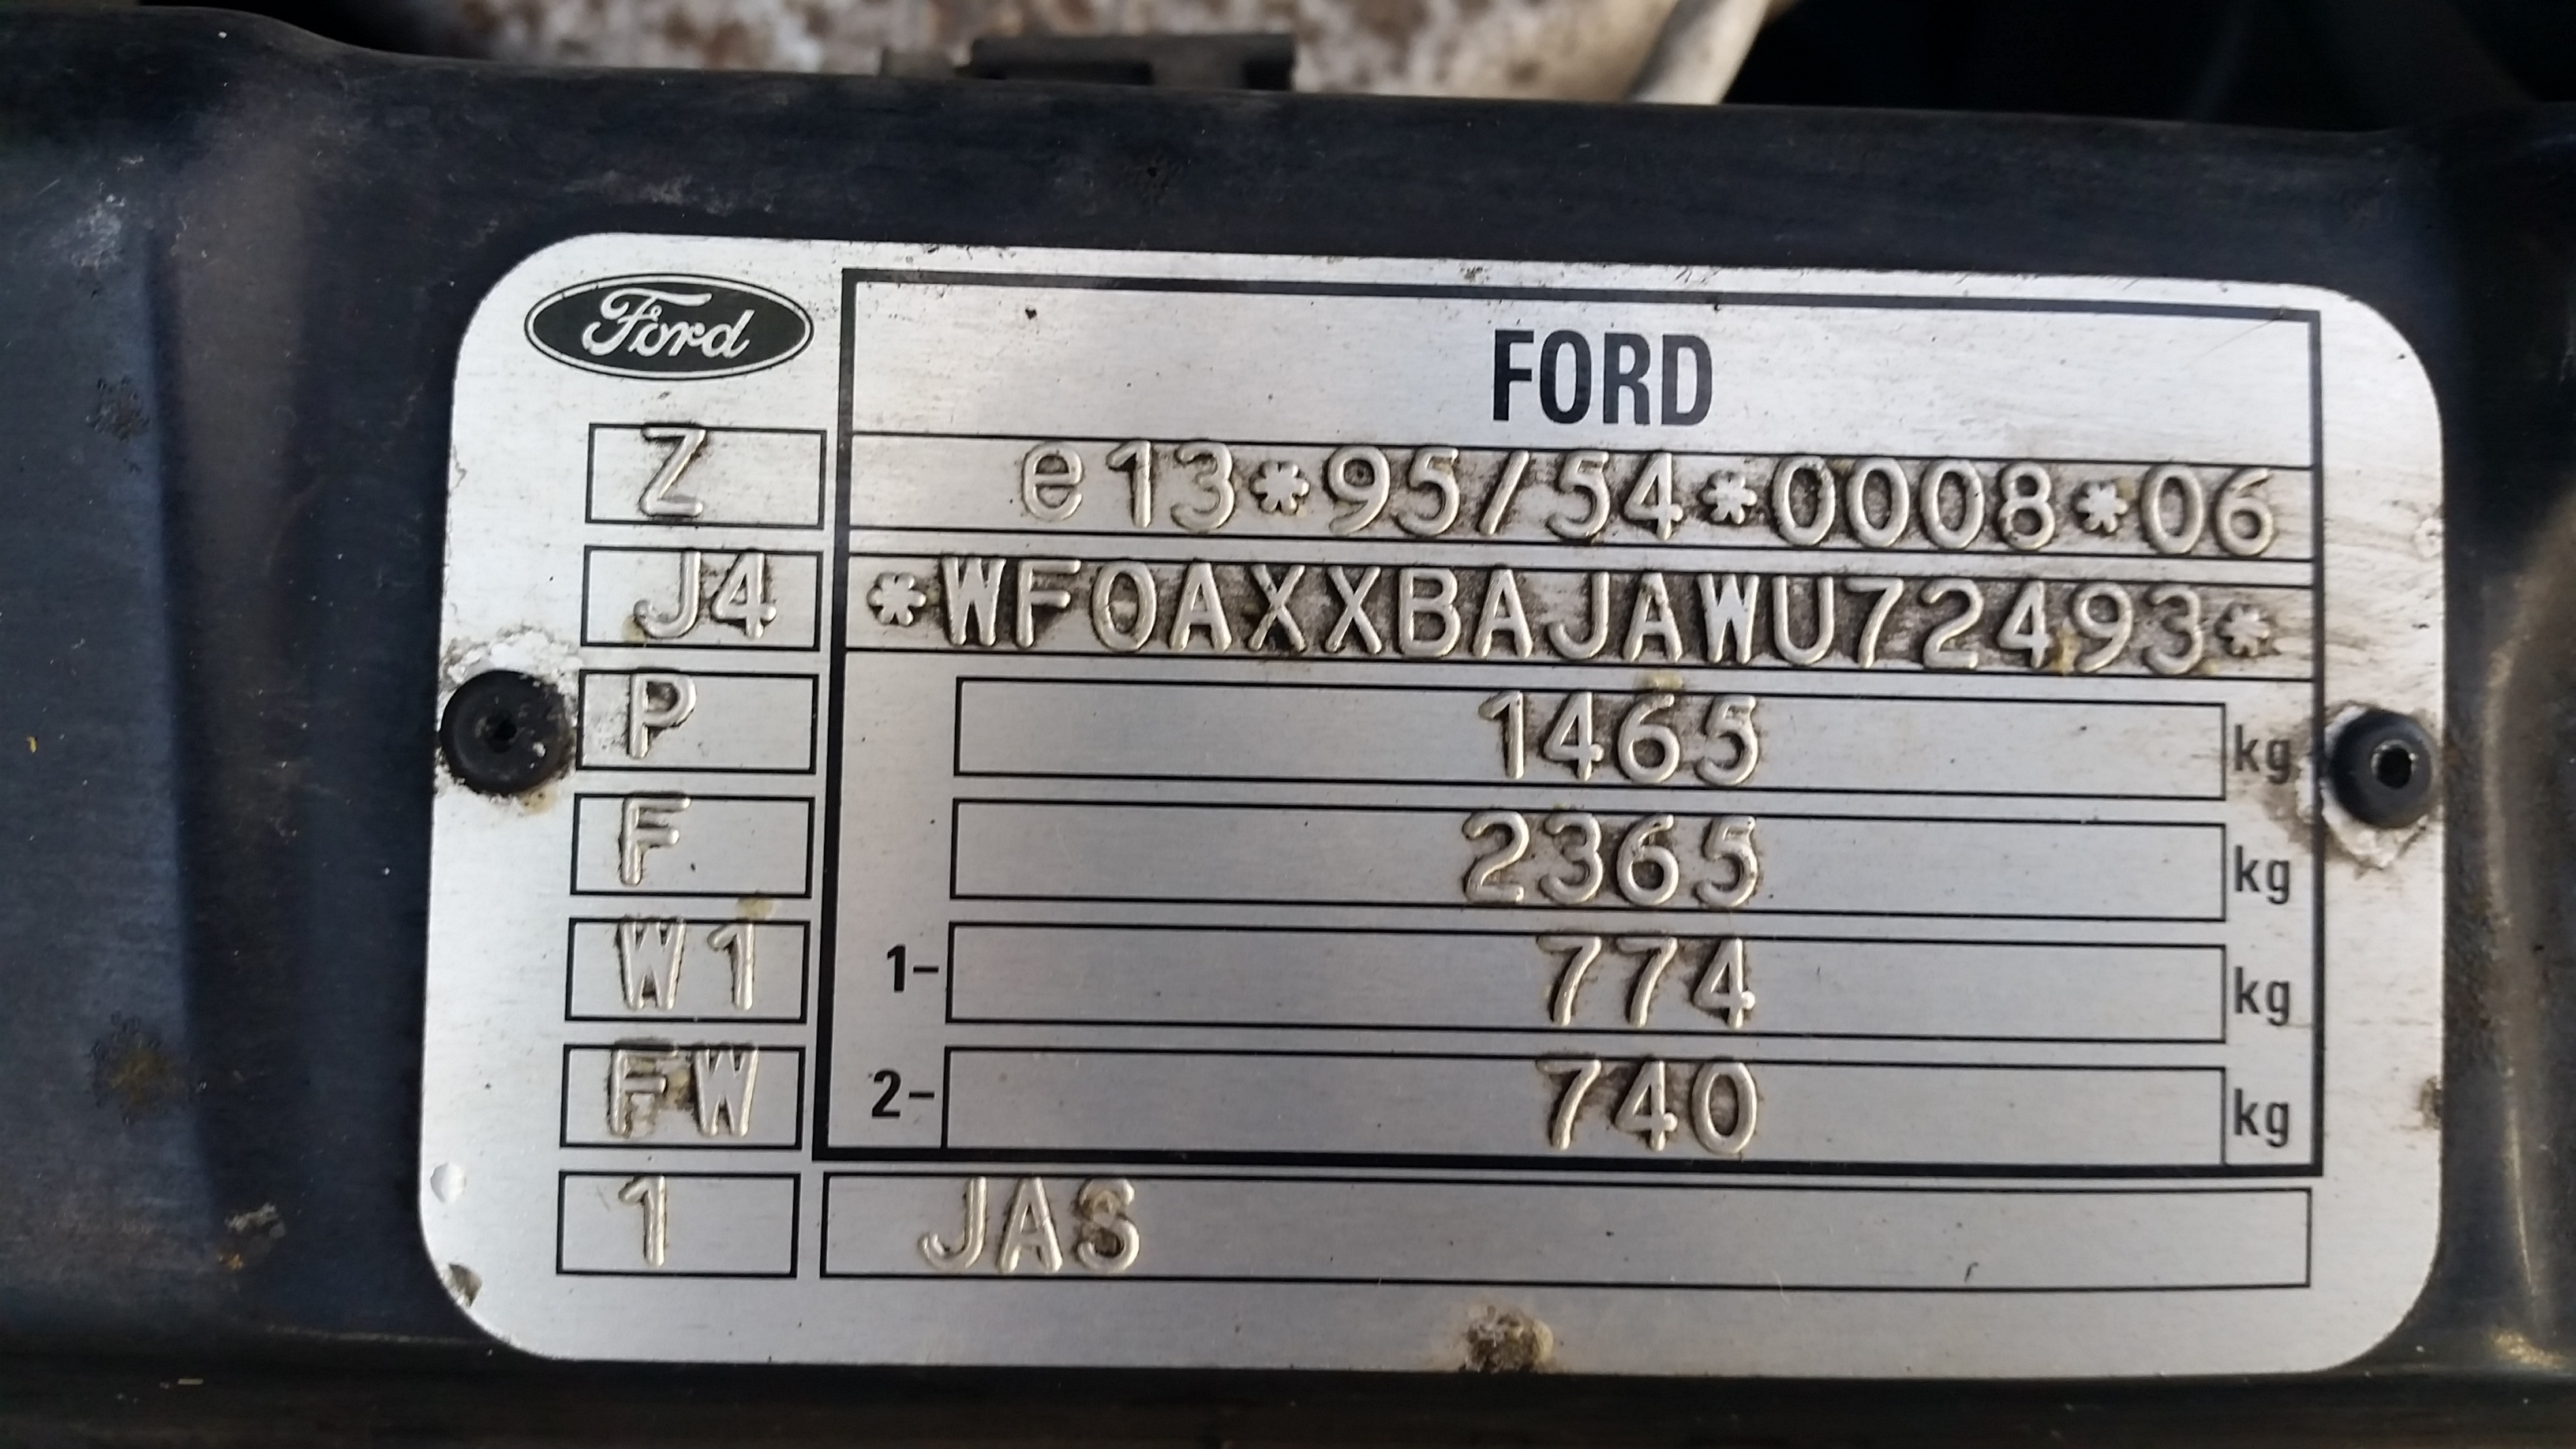 Paint Code Ford Fiesta Club Ford Owners Club Ford Forums